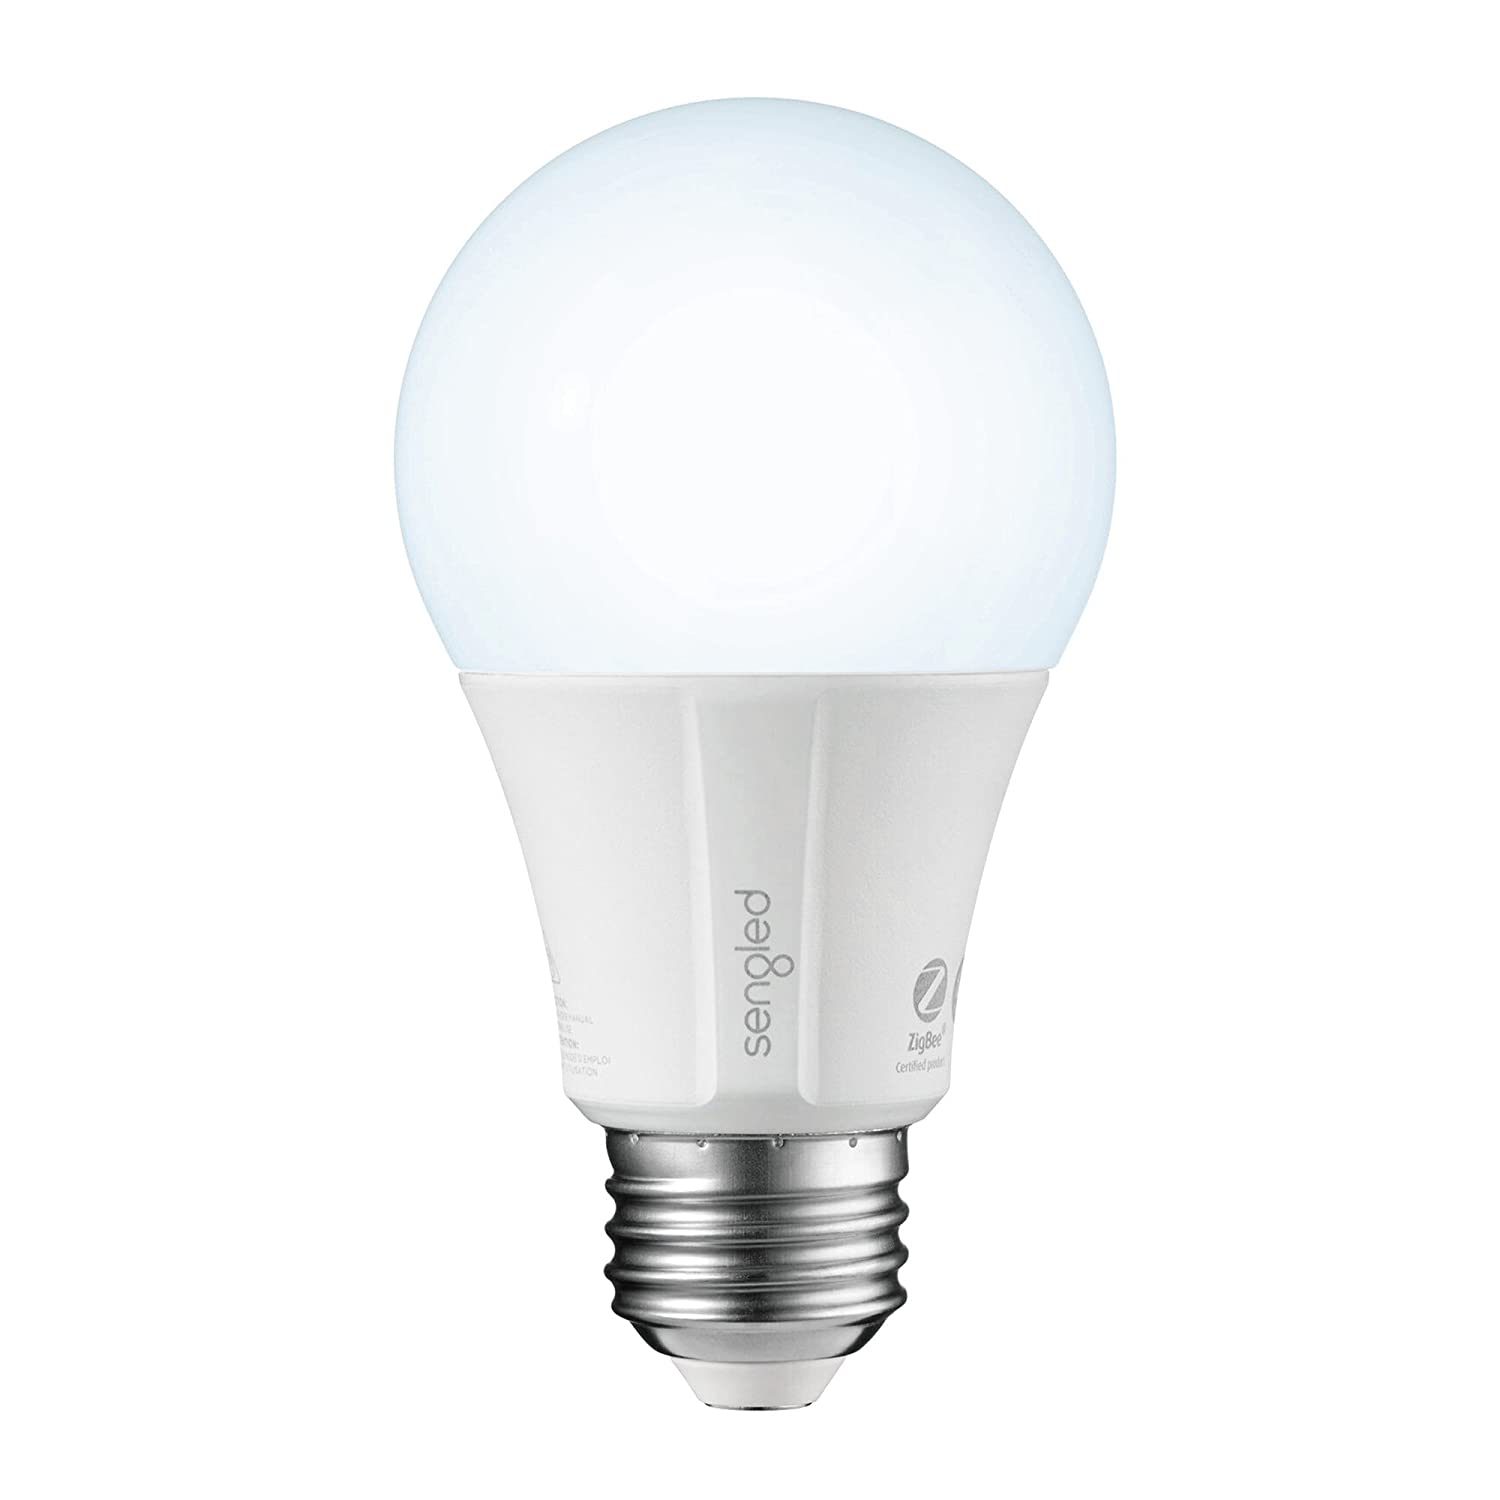 Sengled Smart LED Daylight A19 Bulb